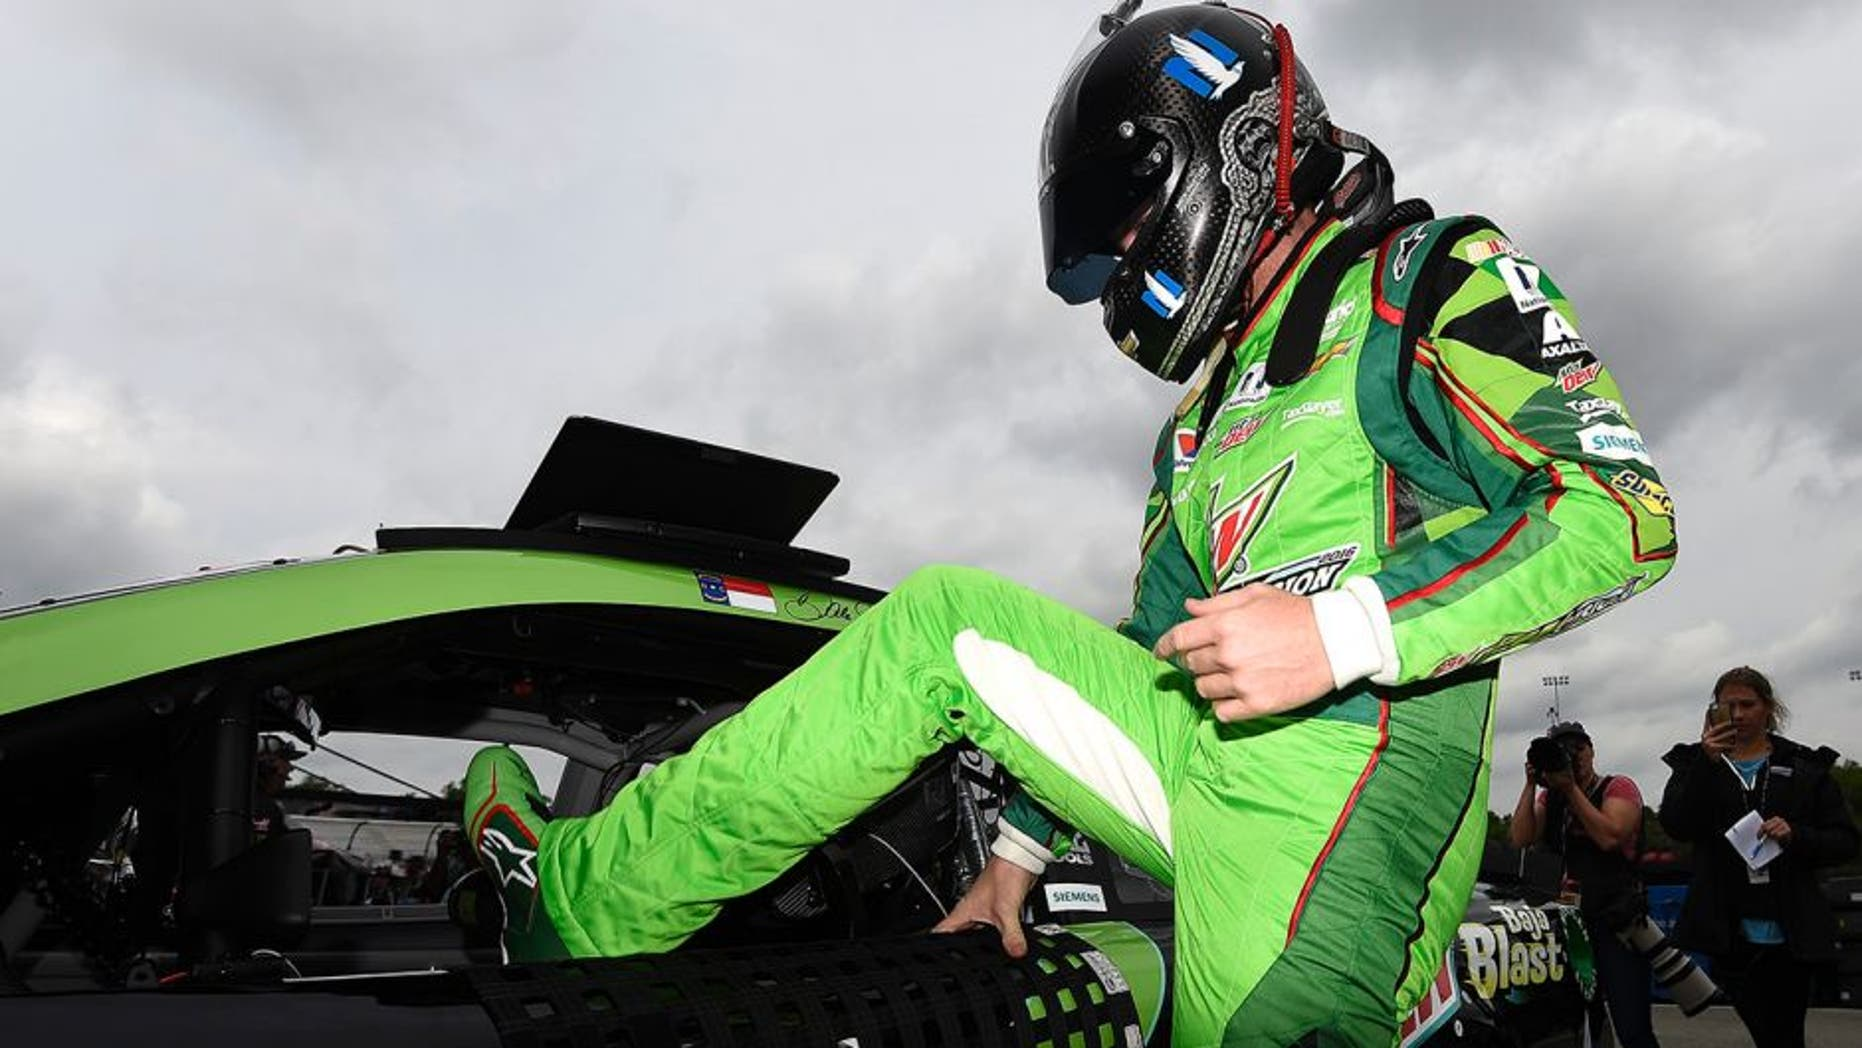 RICHMOND, VA - APRIL 22: Dale Earnhardt Jr., driver of the #88 Mountain Dew Chevrolet, climbs into his car during practice for the NASCAR Sprint Cup Series TOYOTA OWNERS 400 at Richmond International Raceway on April 22, 2016 in Richmond, Virginia. (Photo by Rainier Ehrhardt/Getty Images)